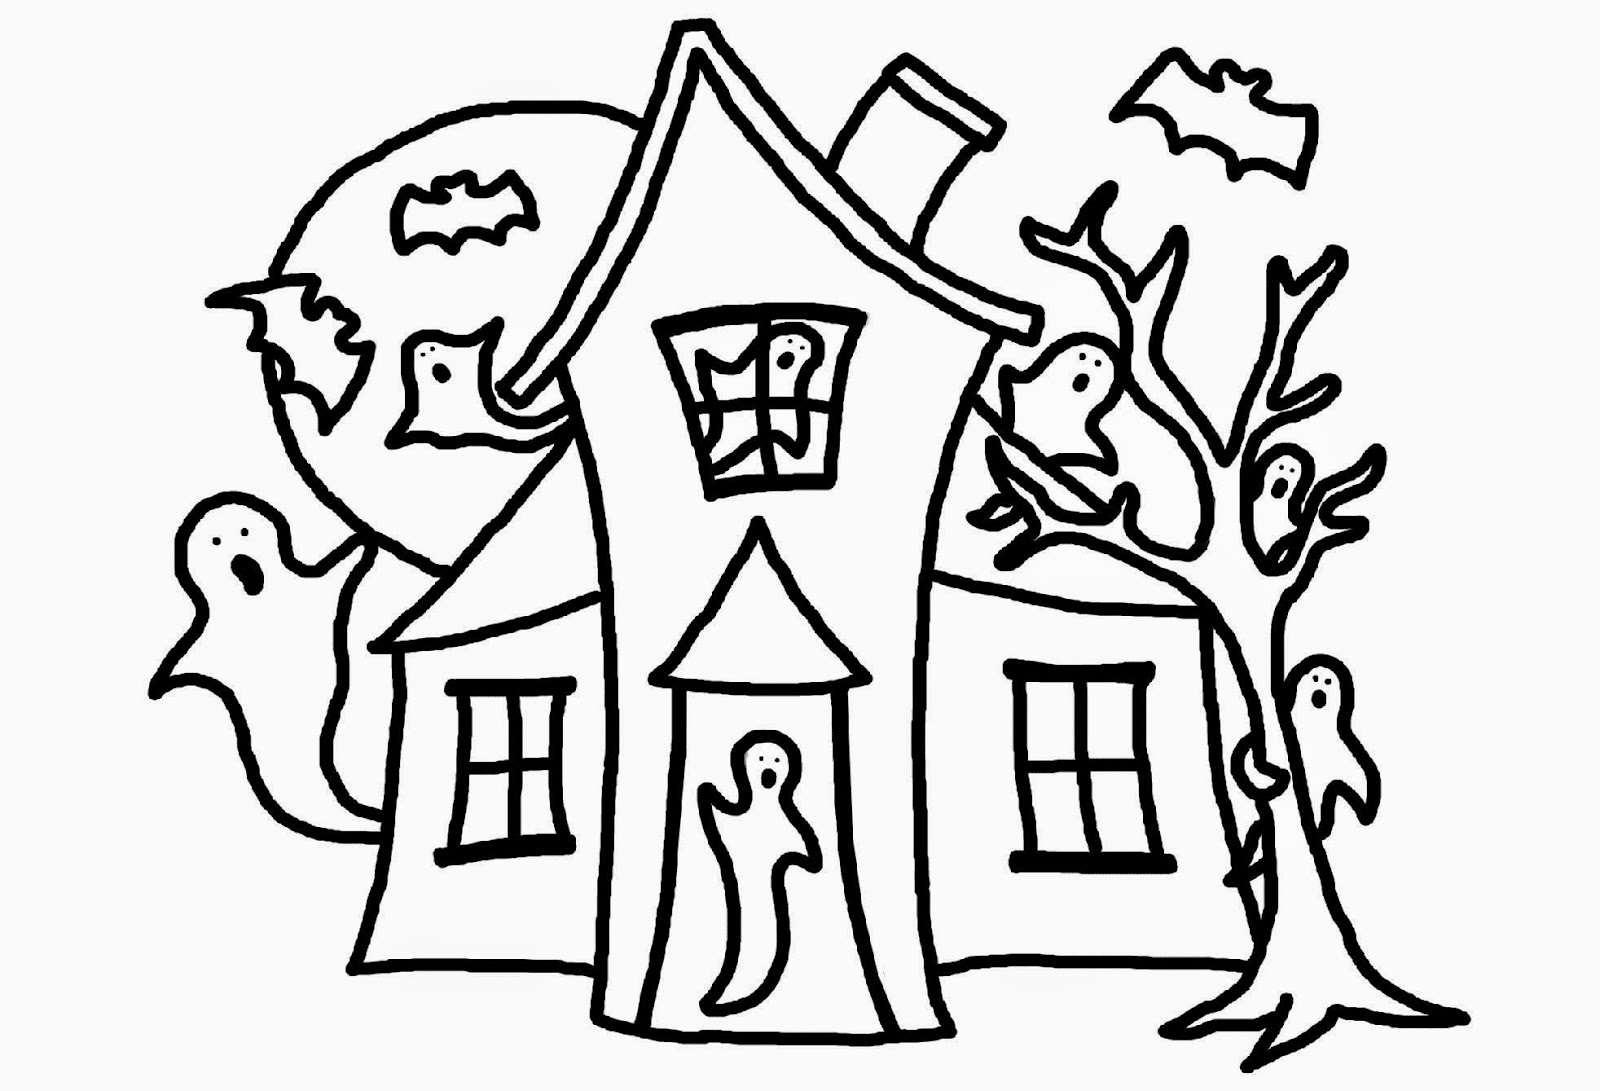 ey c coloring pages